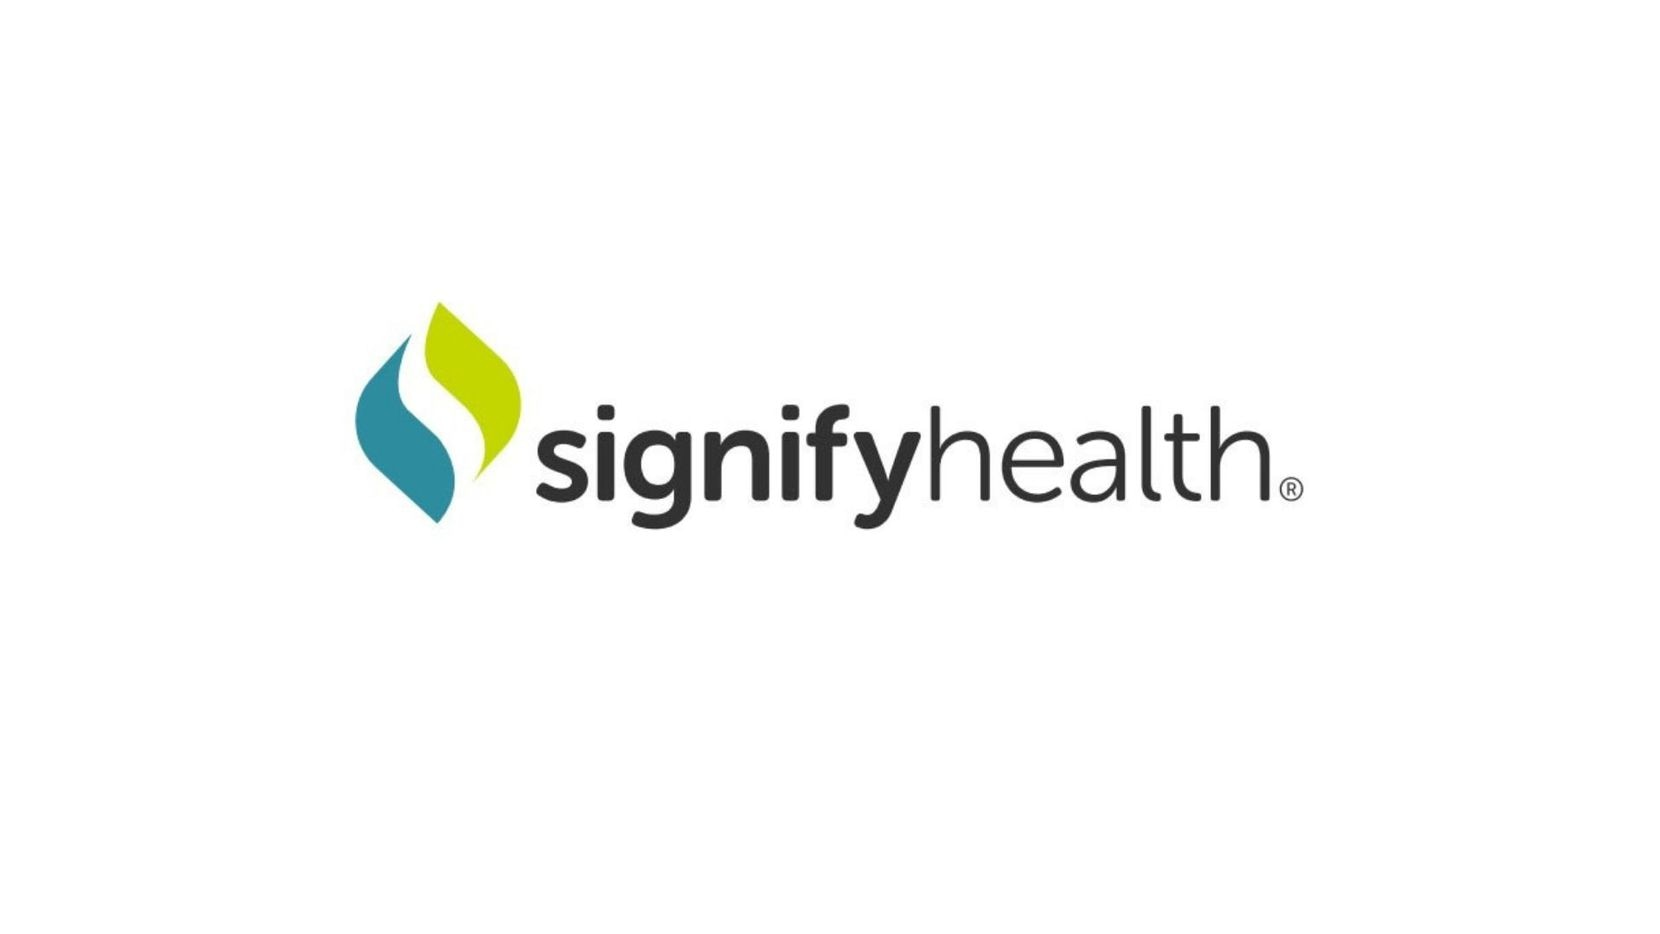 Private equity-backed Signify Health is looking to raise $100 million with its initial public offering, according to a filing with the U.S. Securities and Exchange Commission.